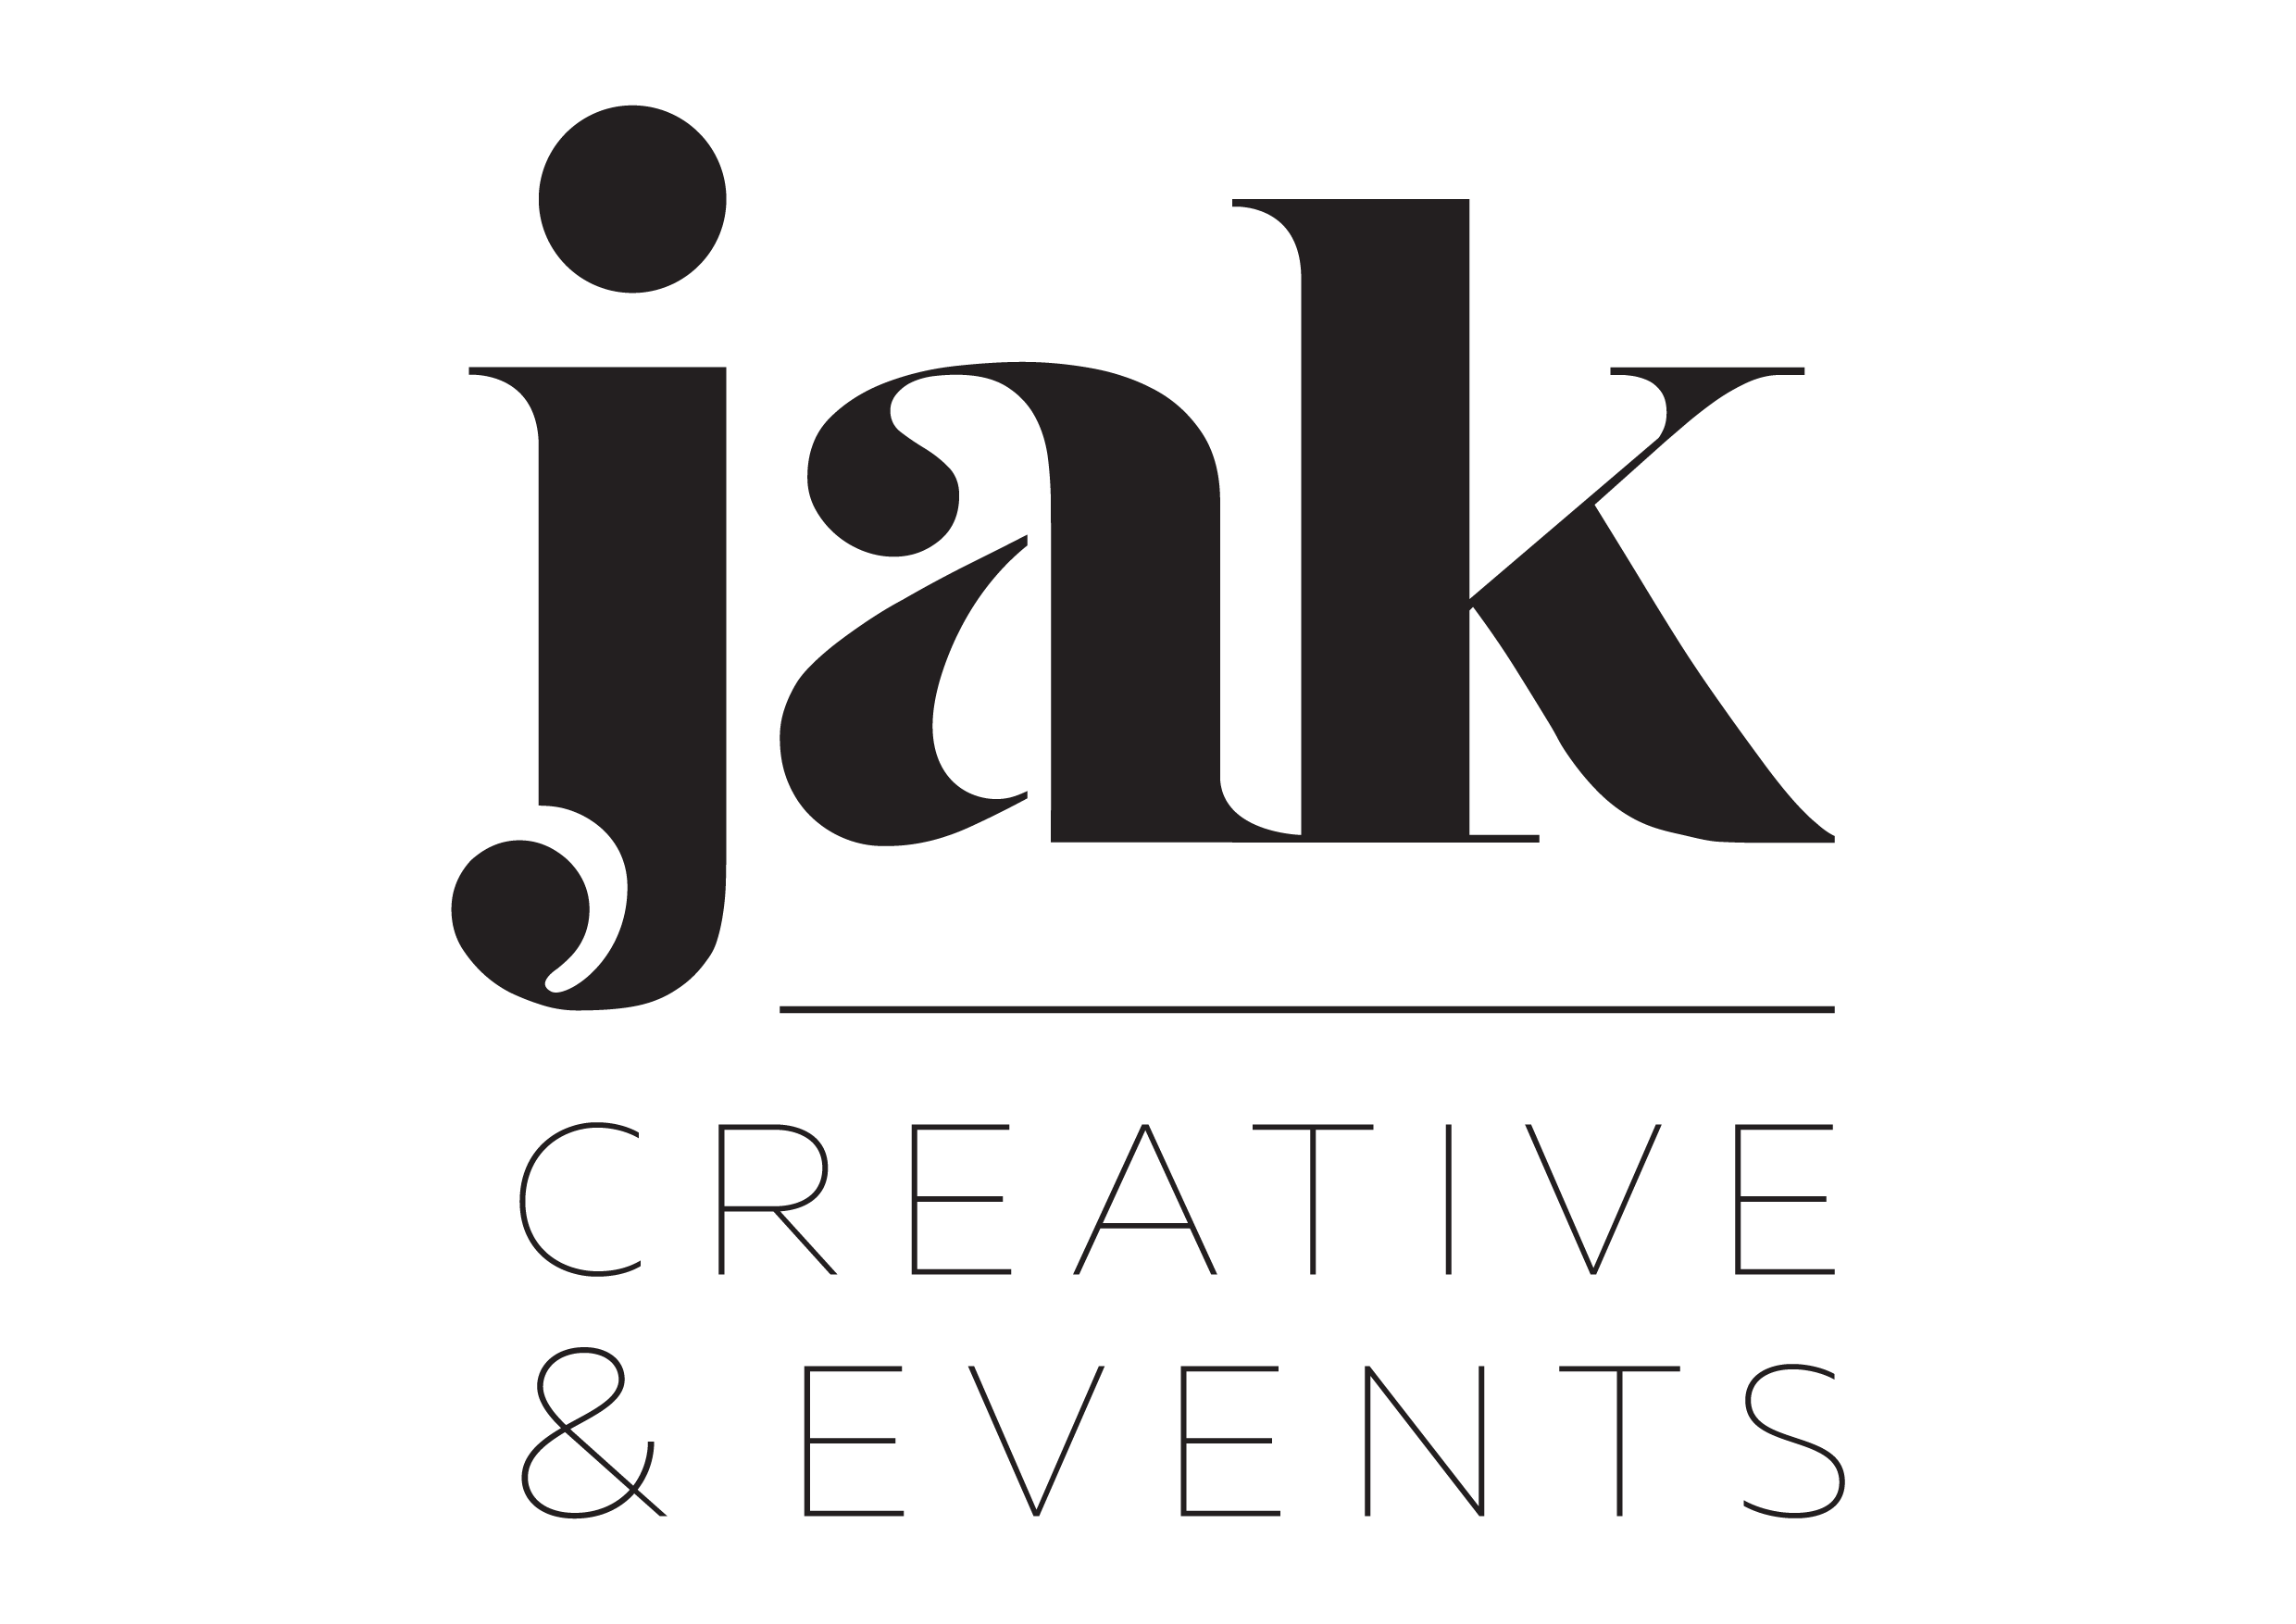 JAK Creative & Events